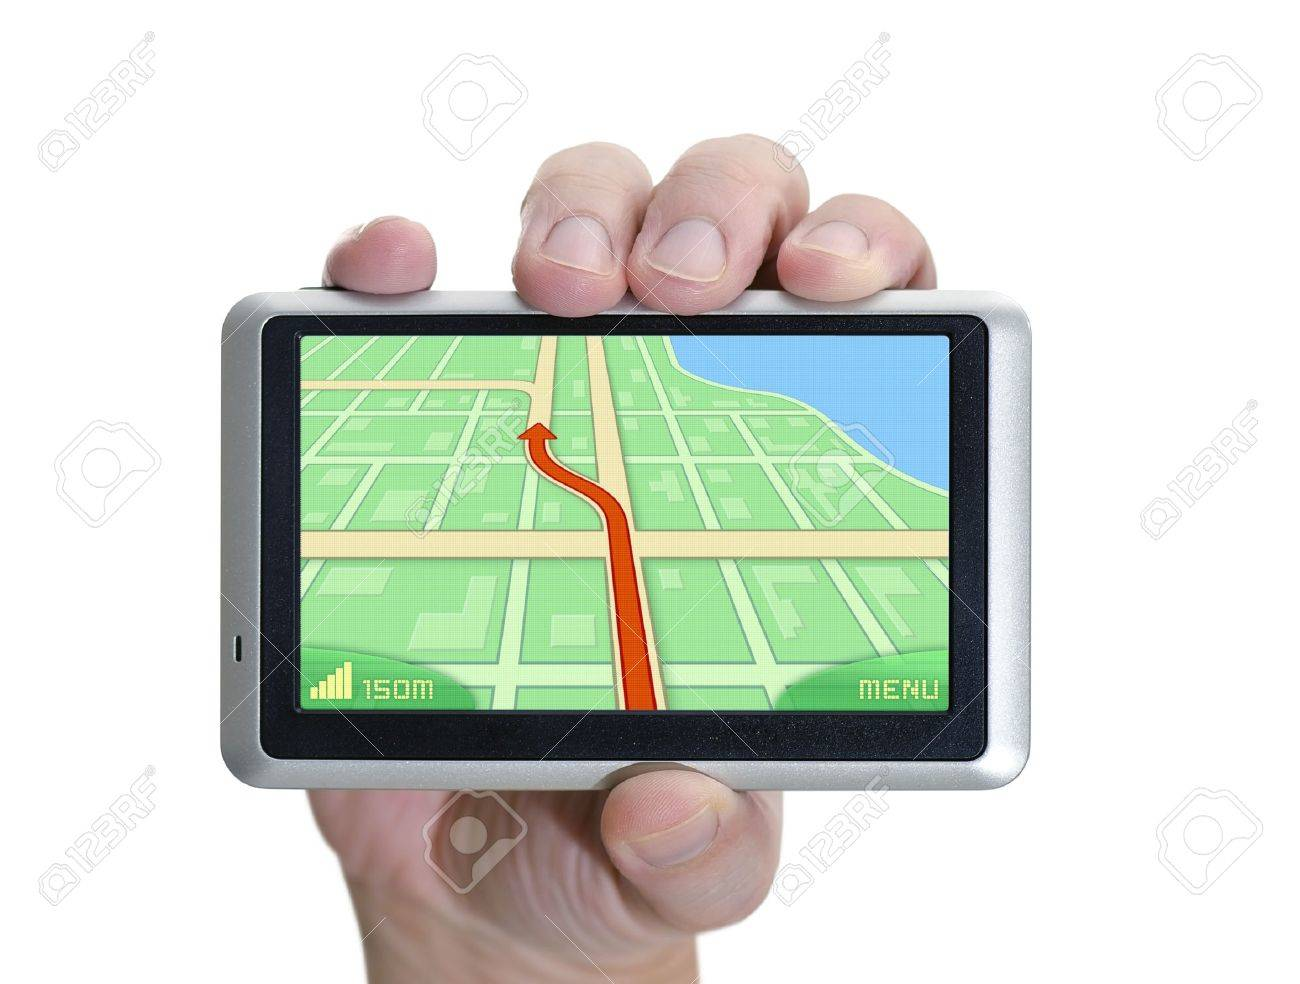 GPS device in hand over white. - 10243590